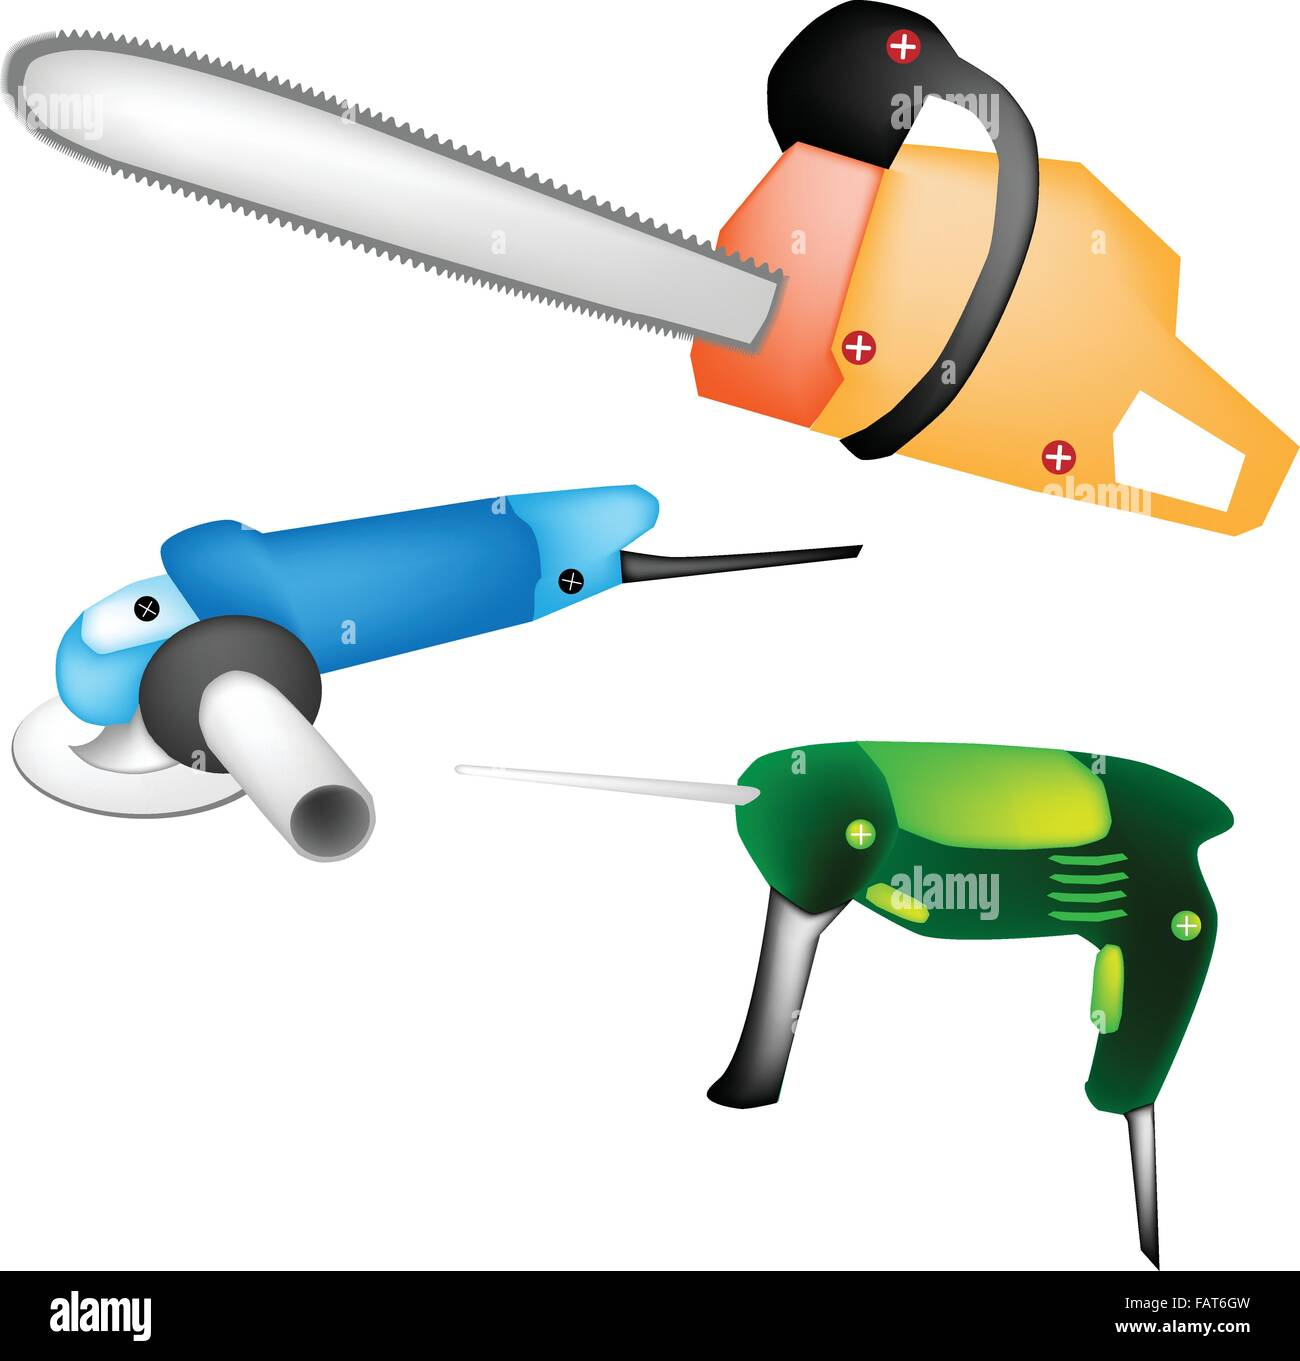 Capenter Tools, Illustration Collection of A Cordless Drill/ Screwdriver, Electric Angle Grinder and Chainsaw for - Stock Vector